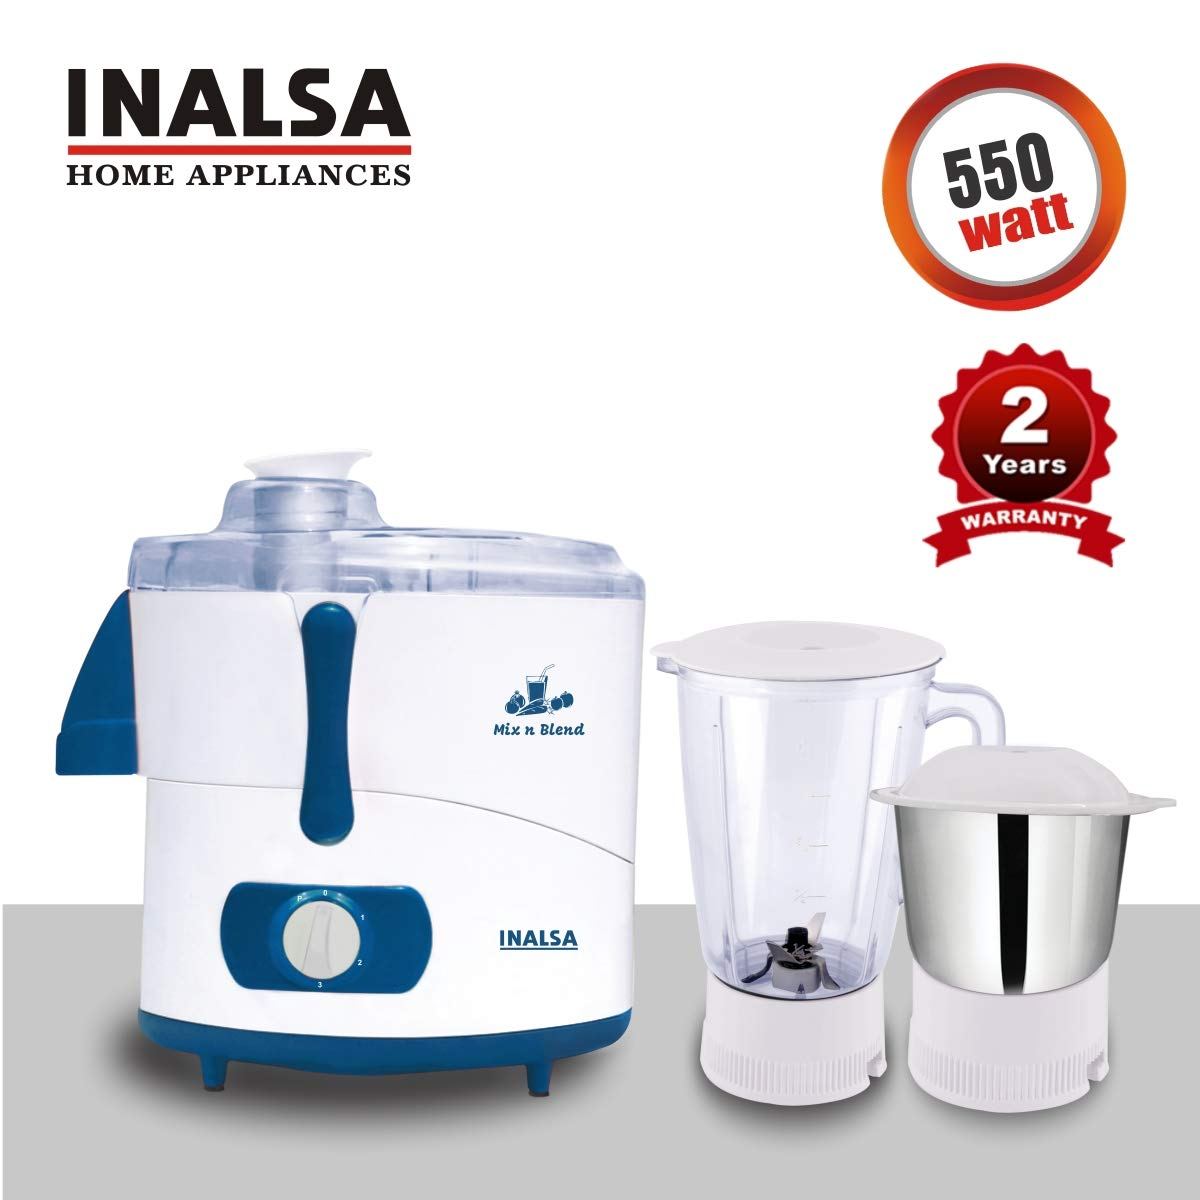 INALSA Juicer Mixer Grinder MIX N BLEND - 550W With 2 Years Warranty